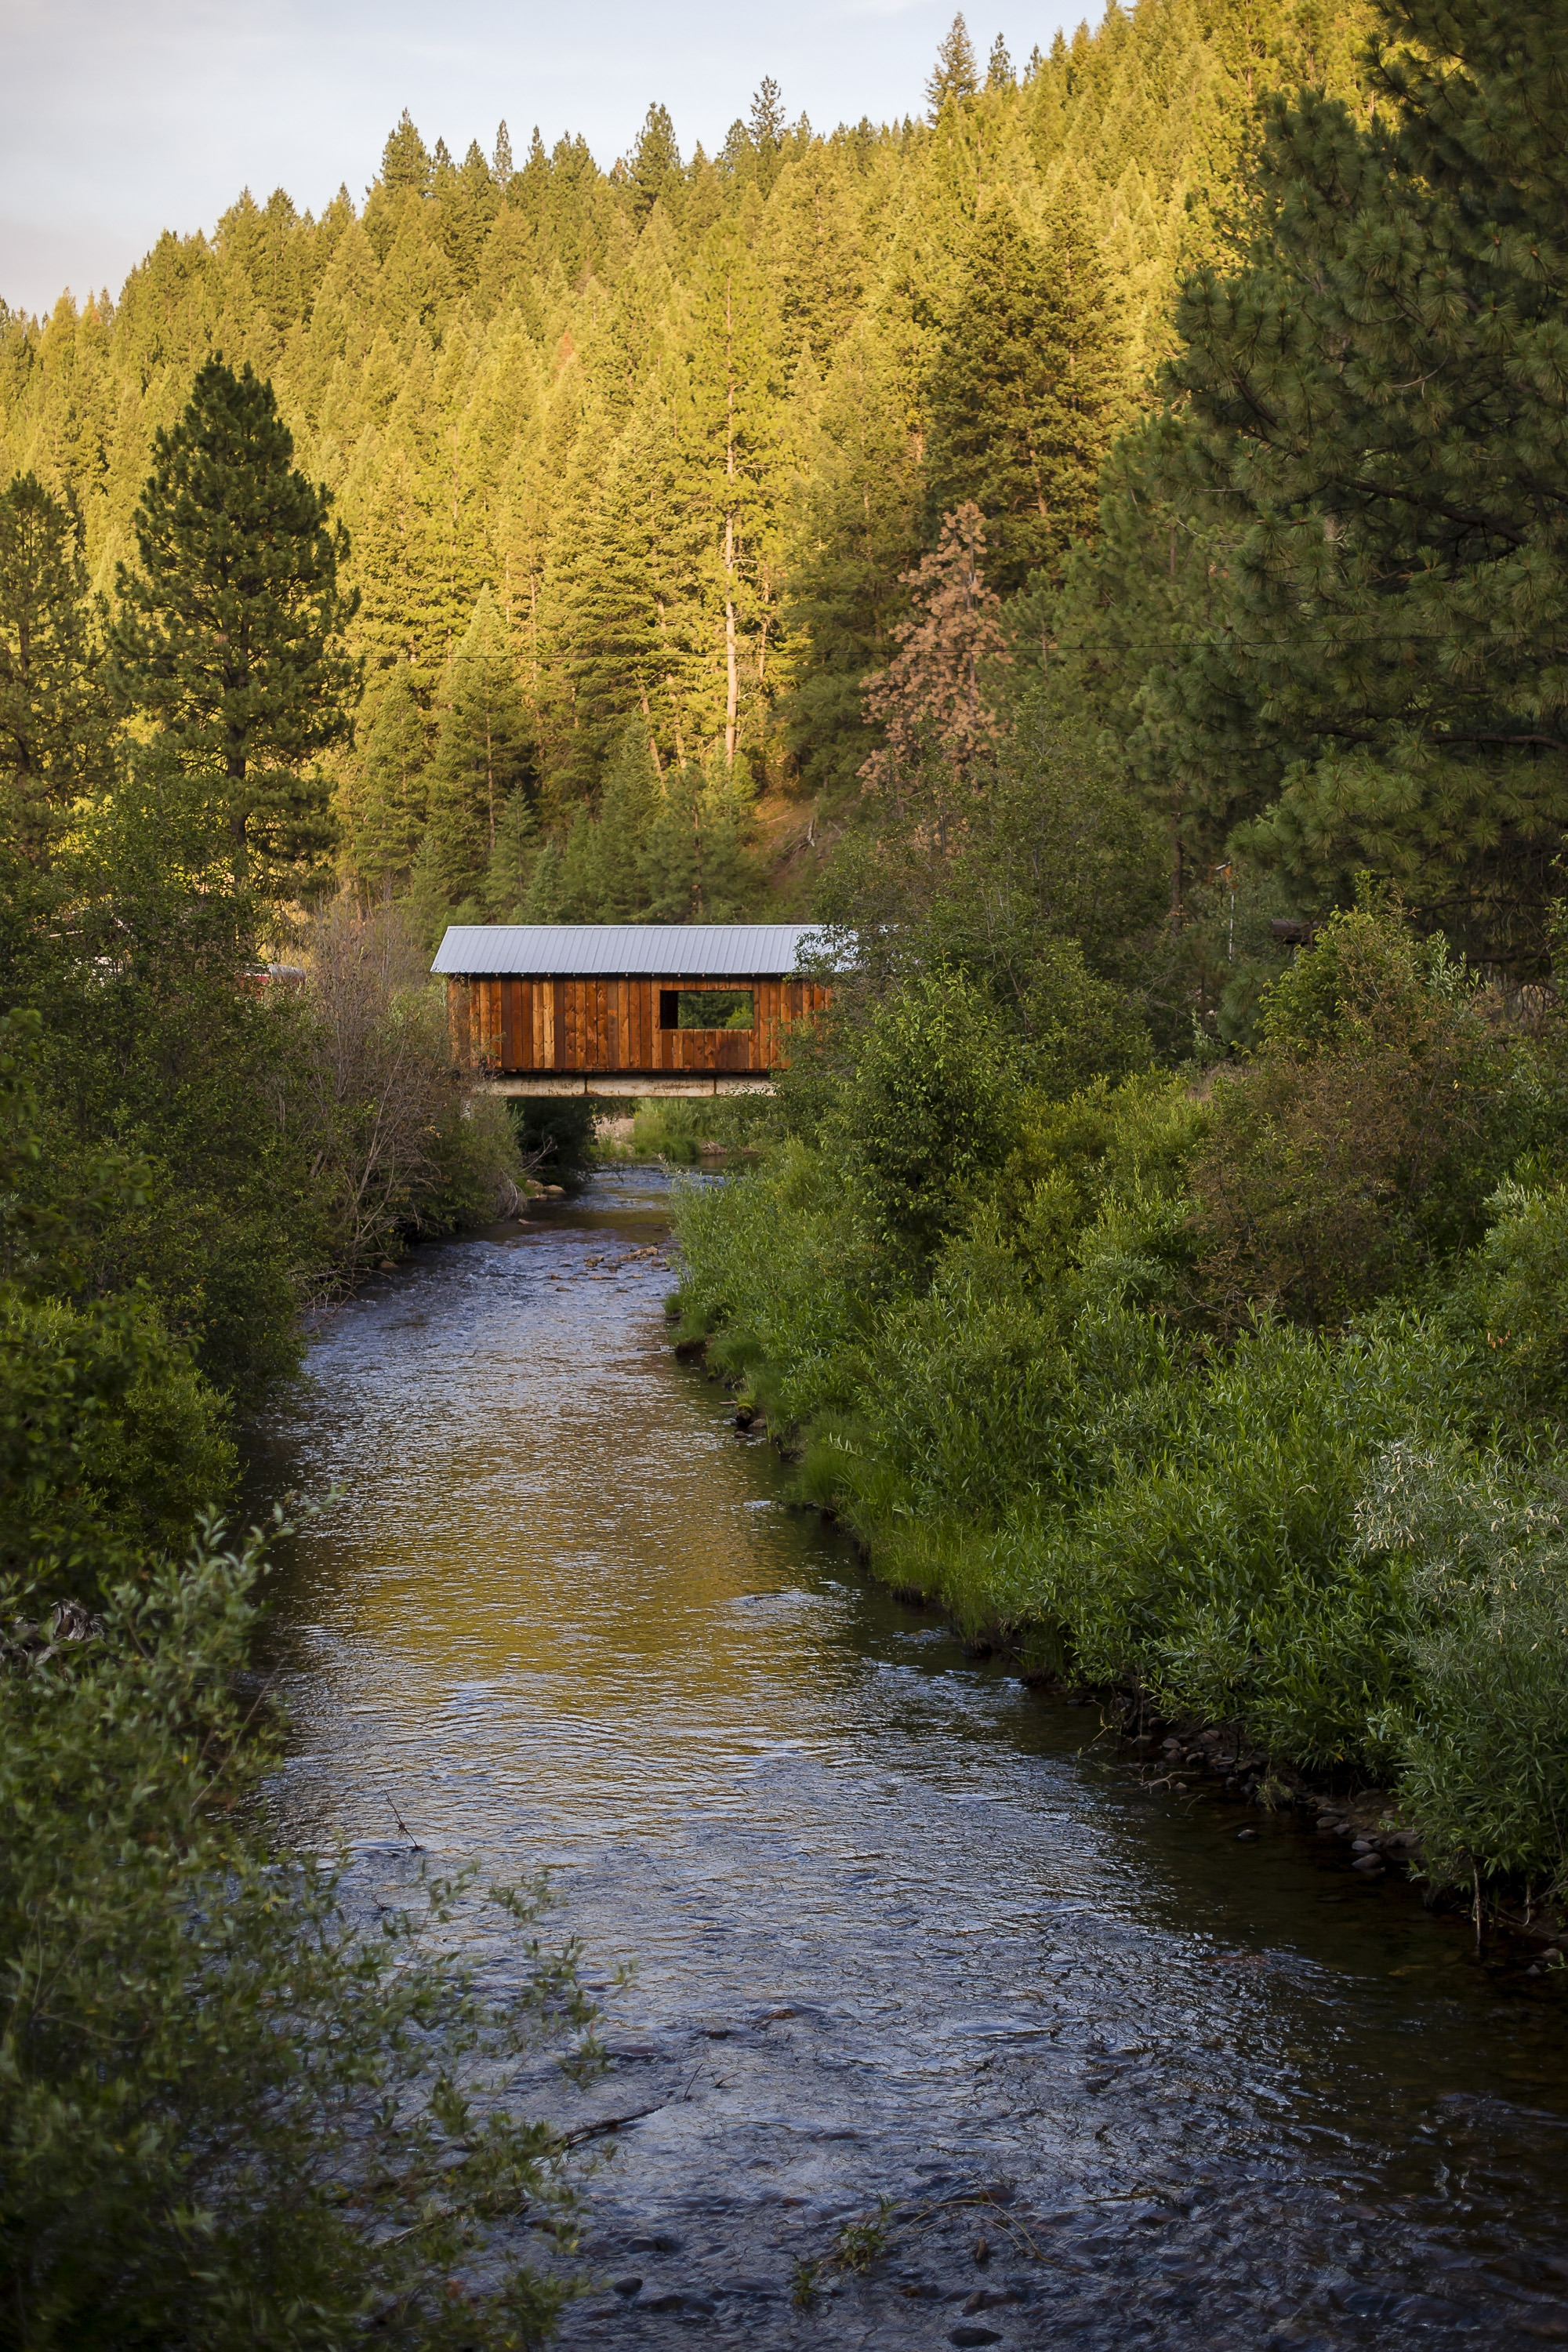 A covered bridge over one of myriad creeks and streams traversed by Idaho's Highway 21, known as the Highway to Heaven, near Idaho City, Idaho.